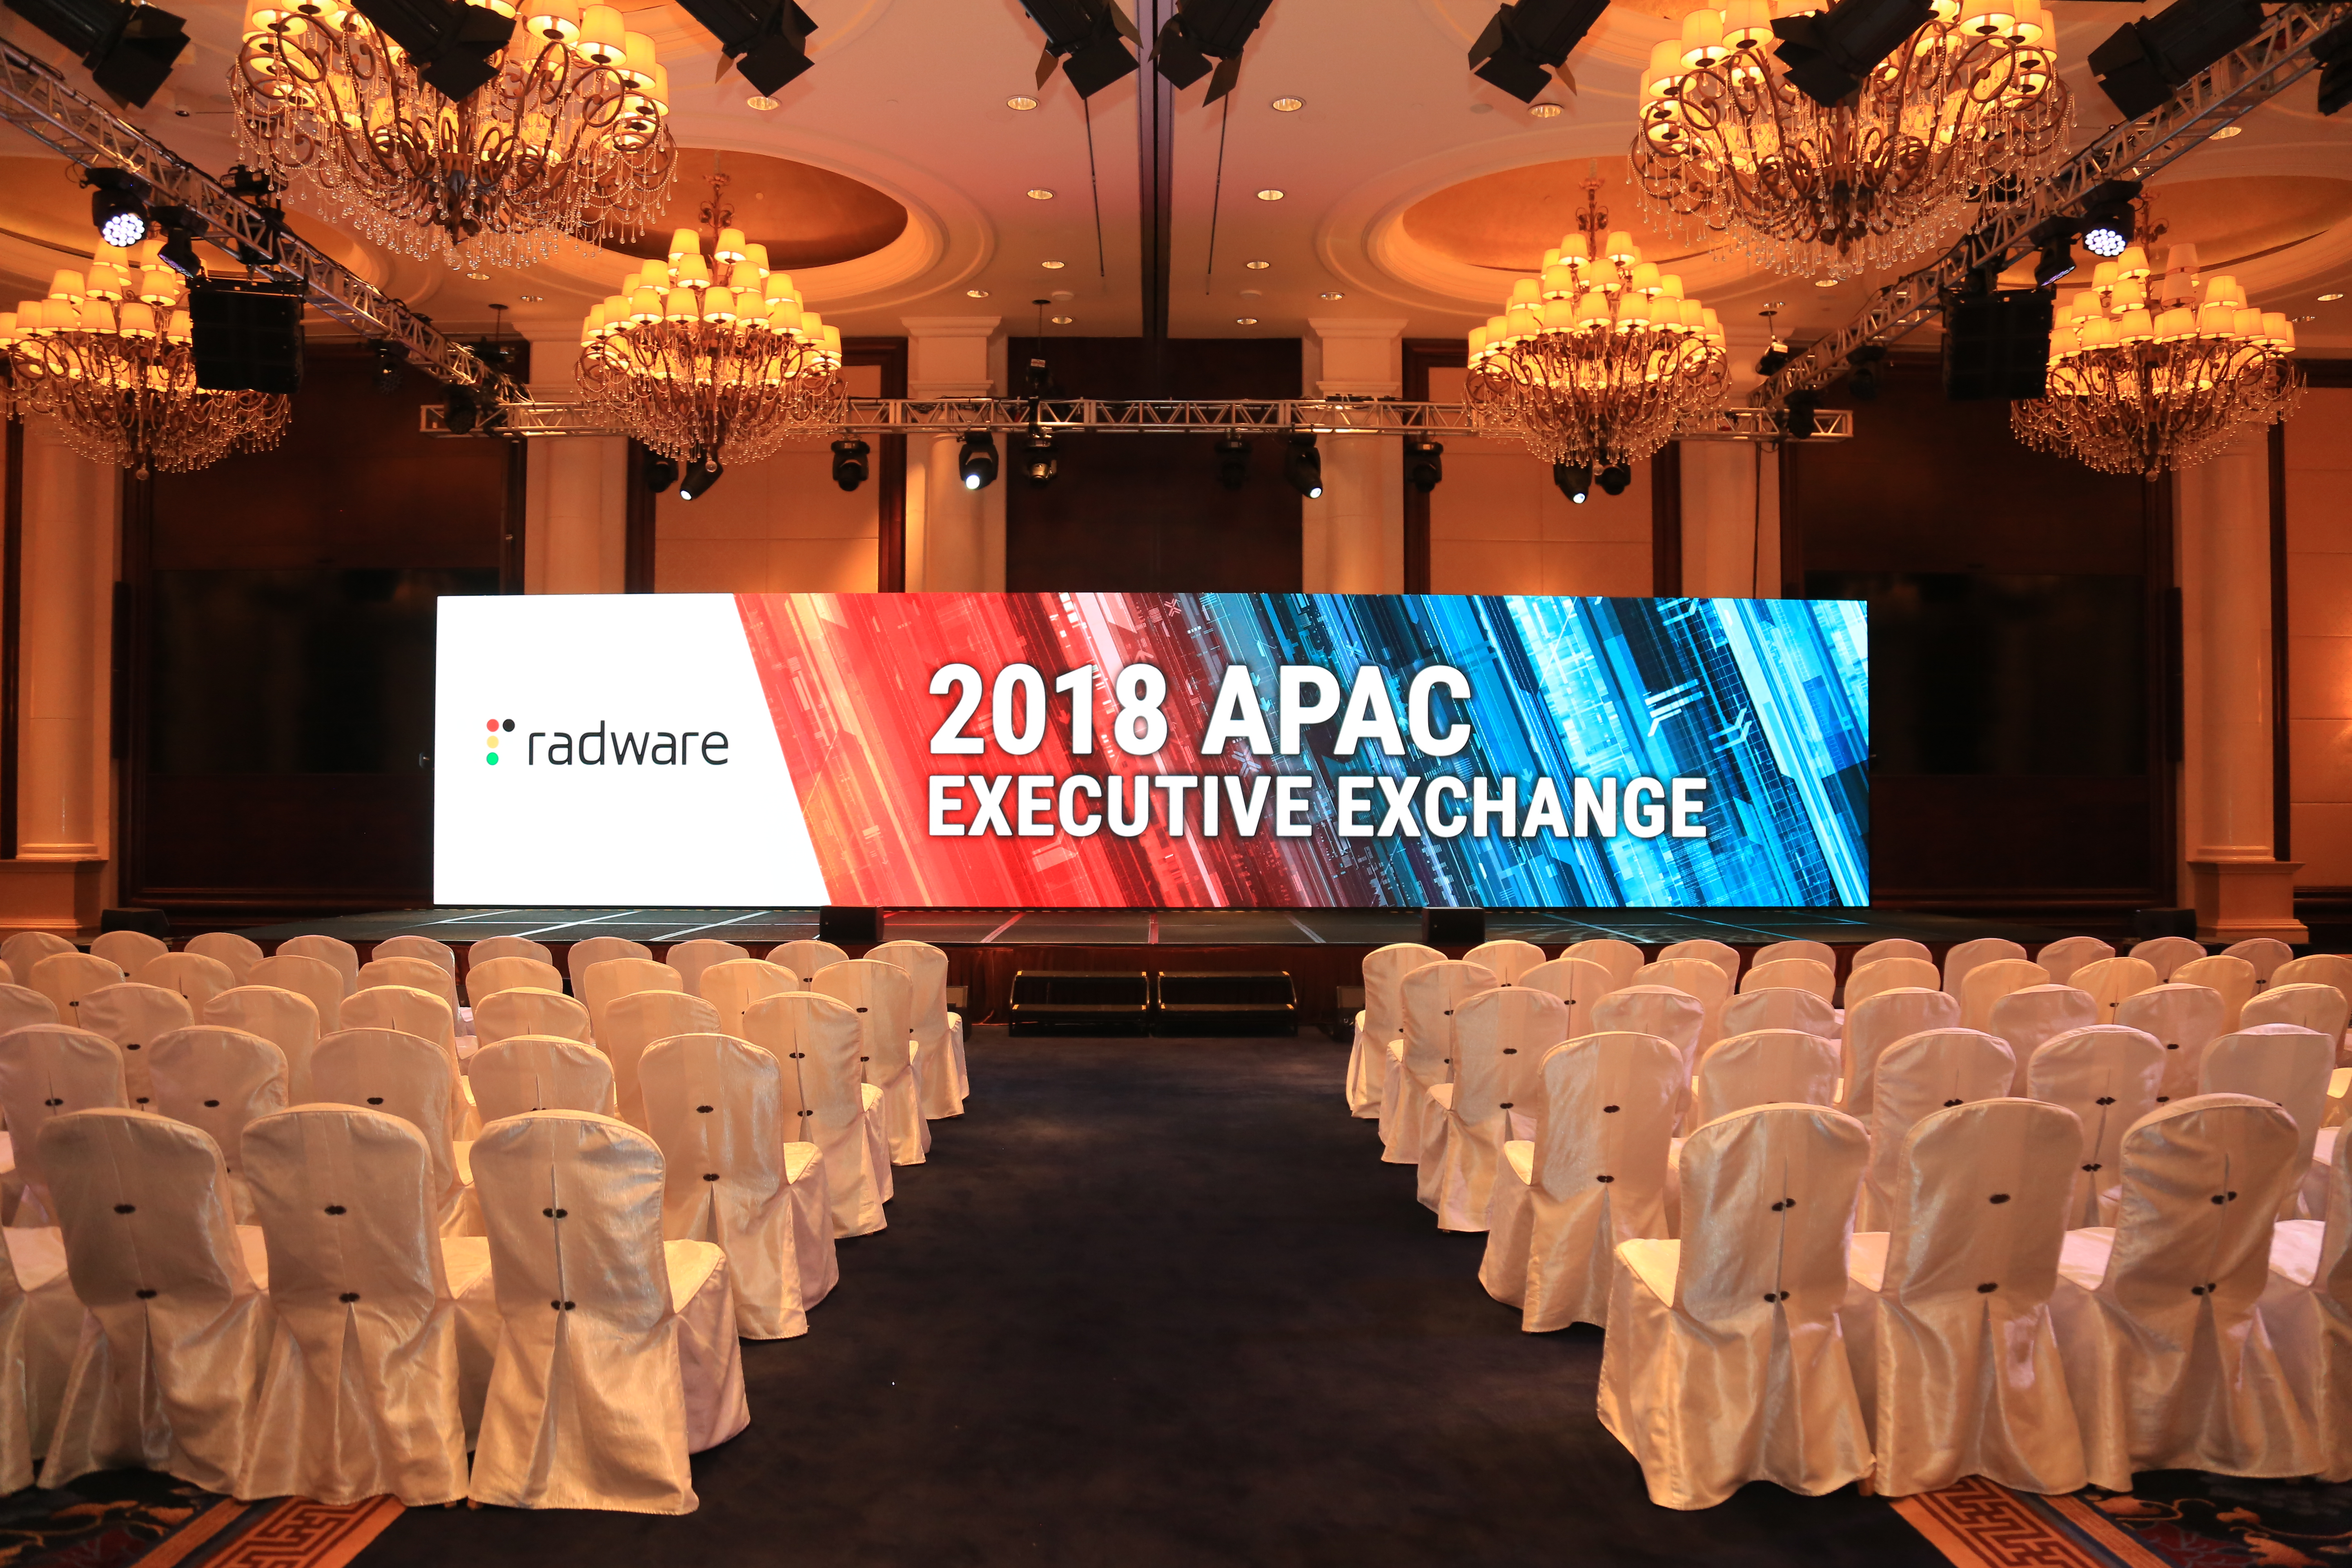 6. Meeting and Events Planner - Radware Partner Conference_1